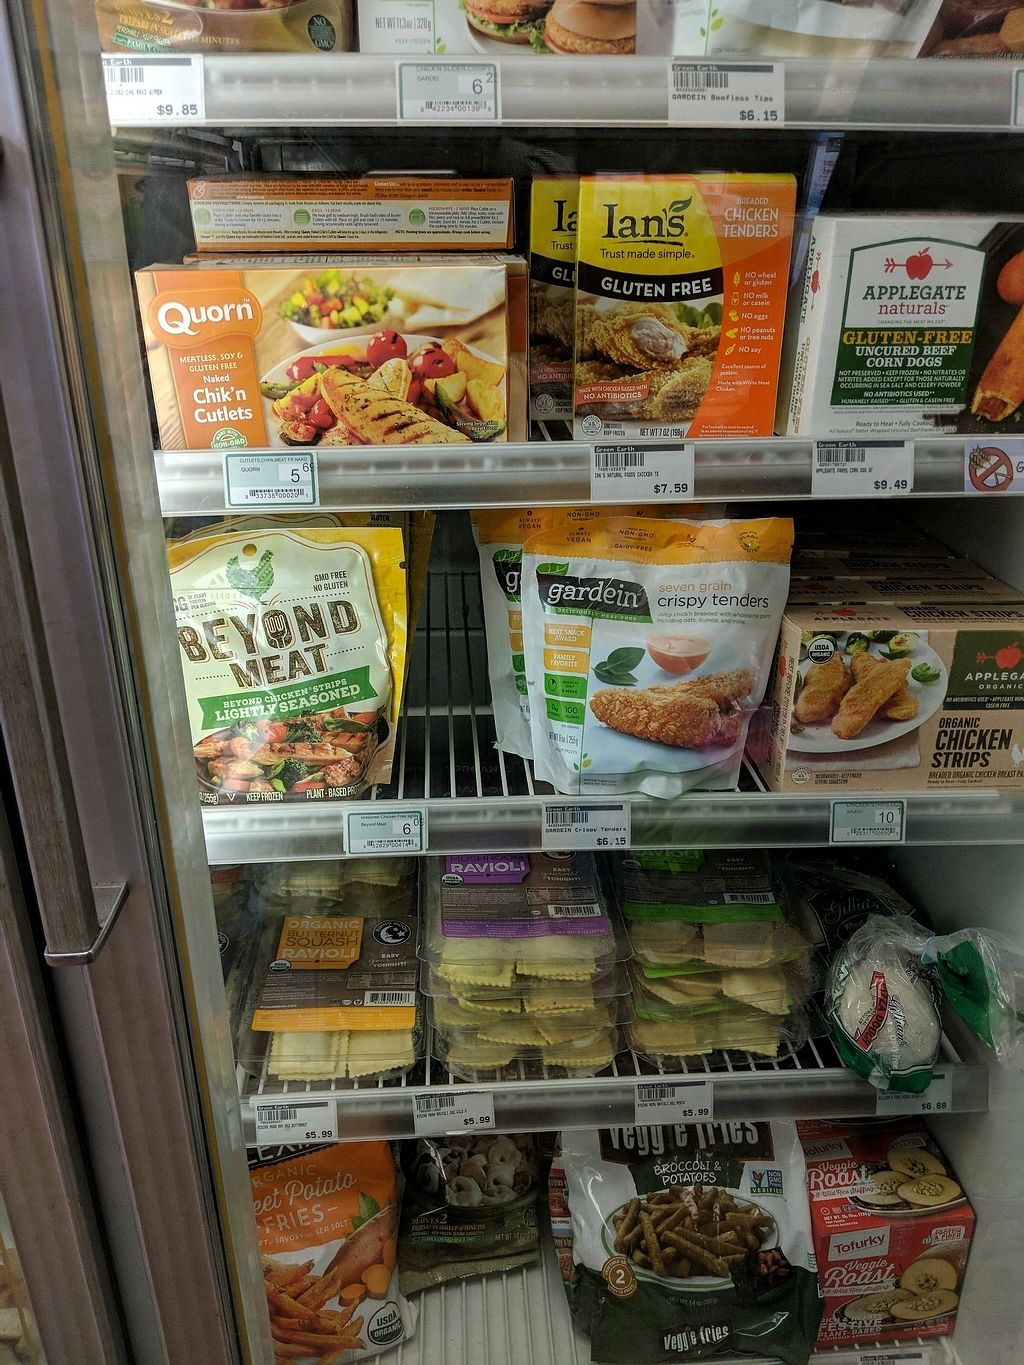 "Photo of Green Earth Health Food Market & Cafe  by <a href=""/members/profile/ToriKriegel"">ToriKriegel</a> <br/>All the fake meat <br/> April 7, 2018  - <a href='/contact/abuse/image/14642/382030'>Report</a>"